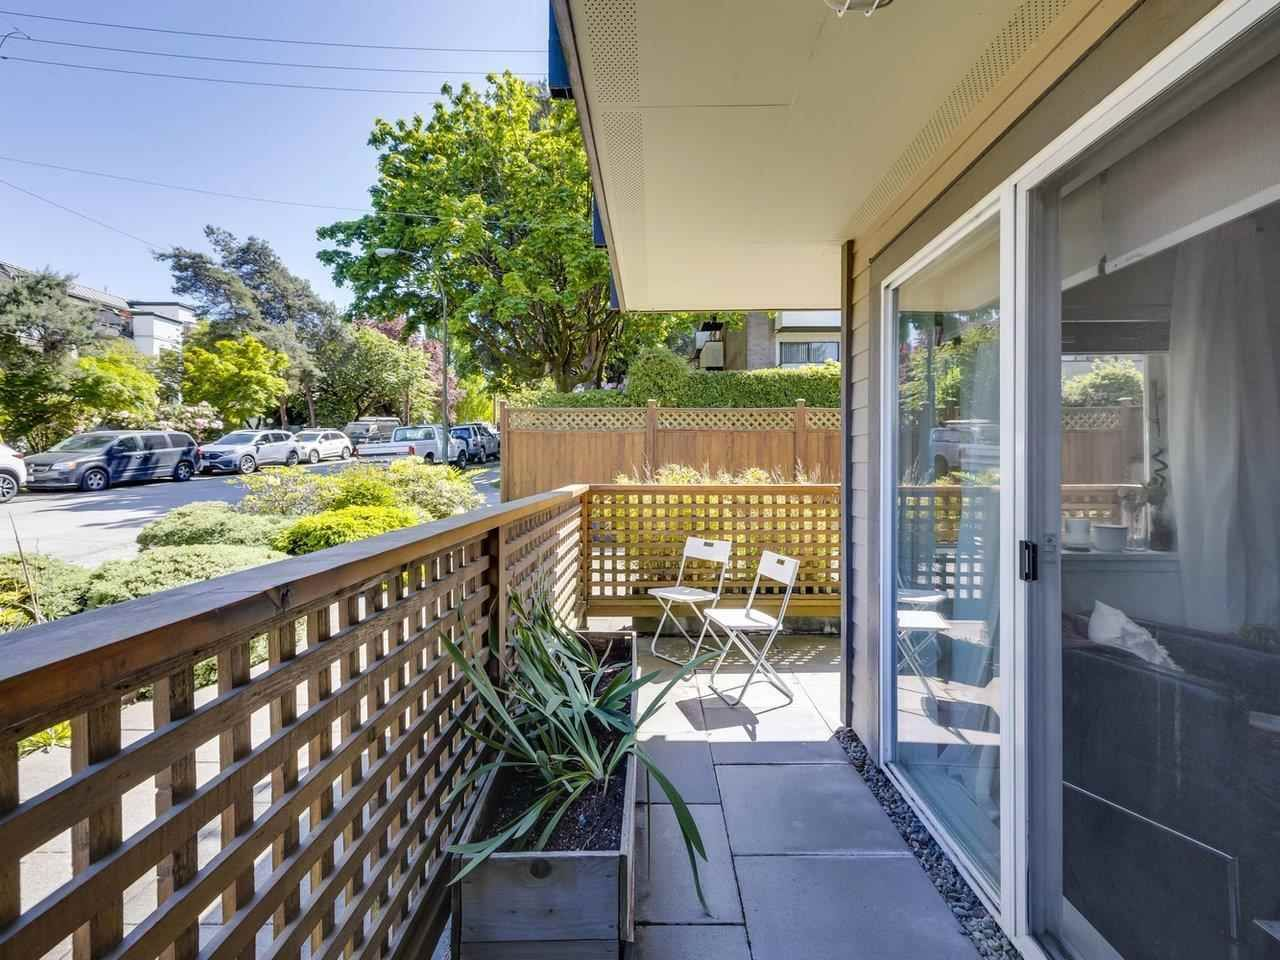 """Main Photo: 4 2223 PRINCE EDWARD Street in Vancouver: Mount Pleasant VE Condo for sale in """"Valko Gardens"""" (Vancouver East)  : MLS®# R2581429"""